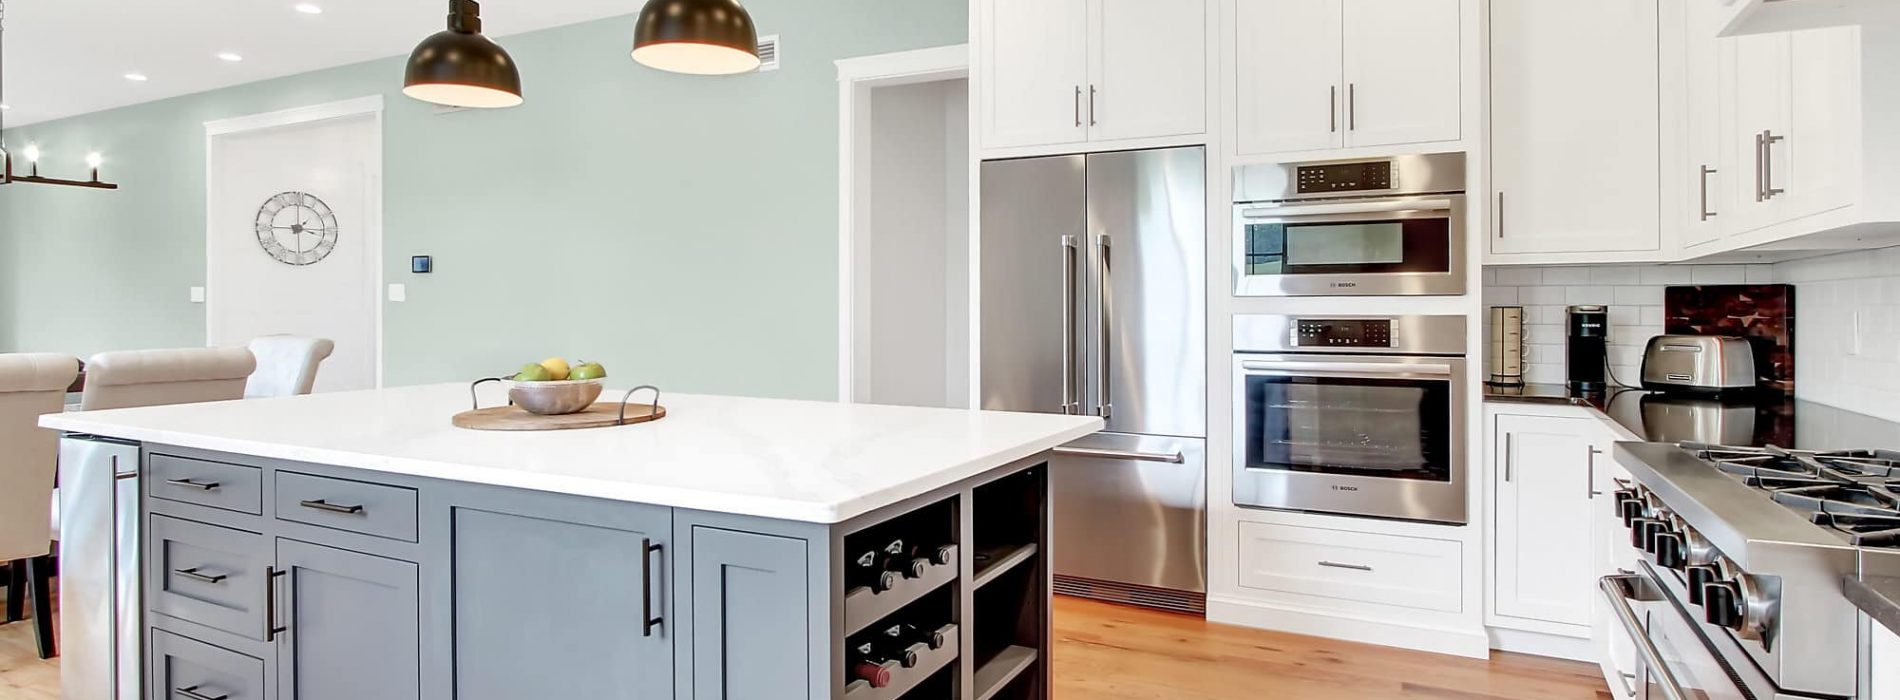 renovated kitchen with white cabinets